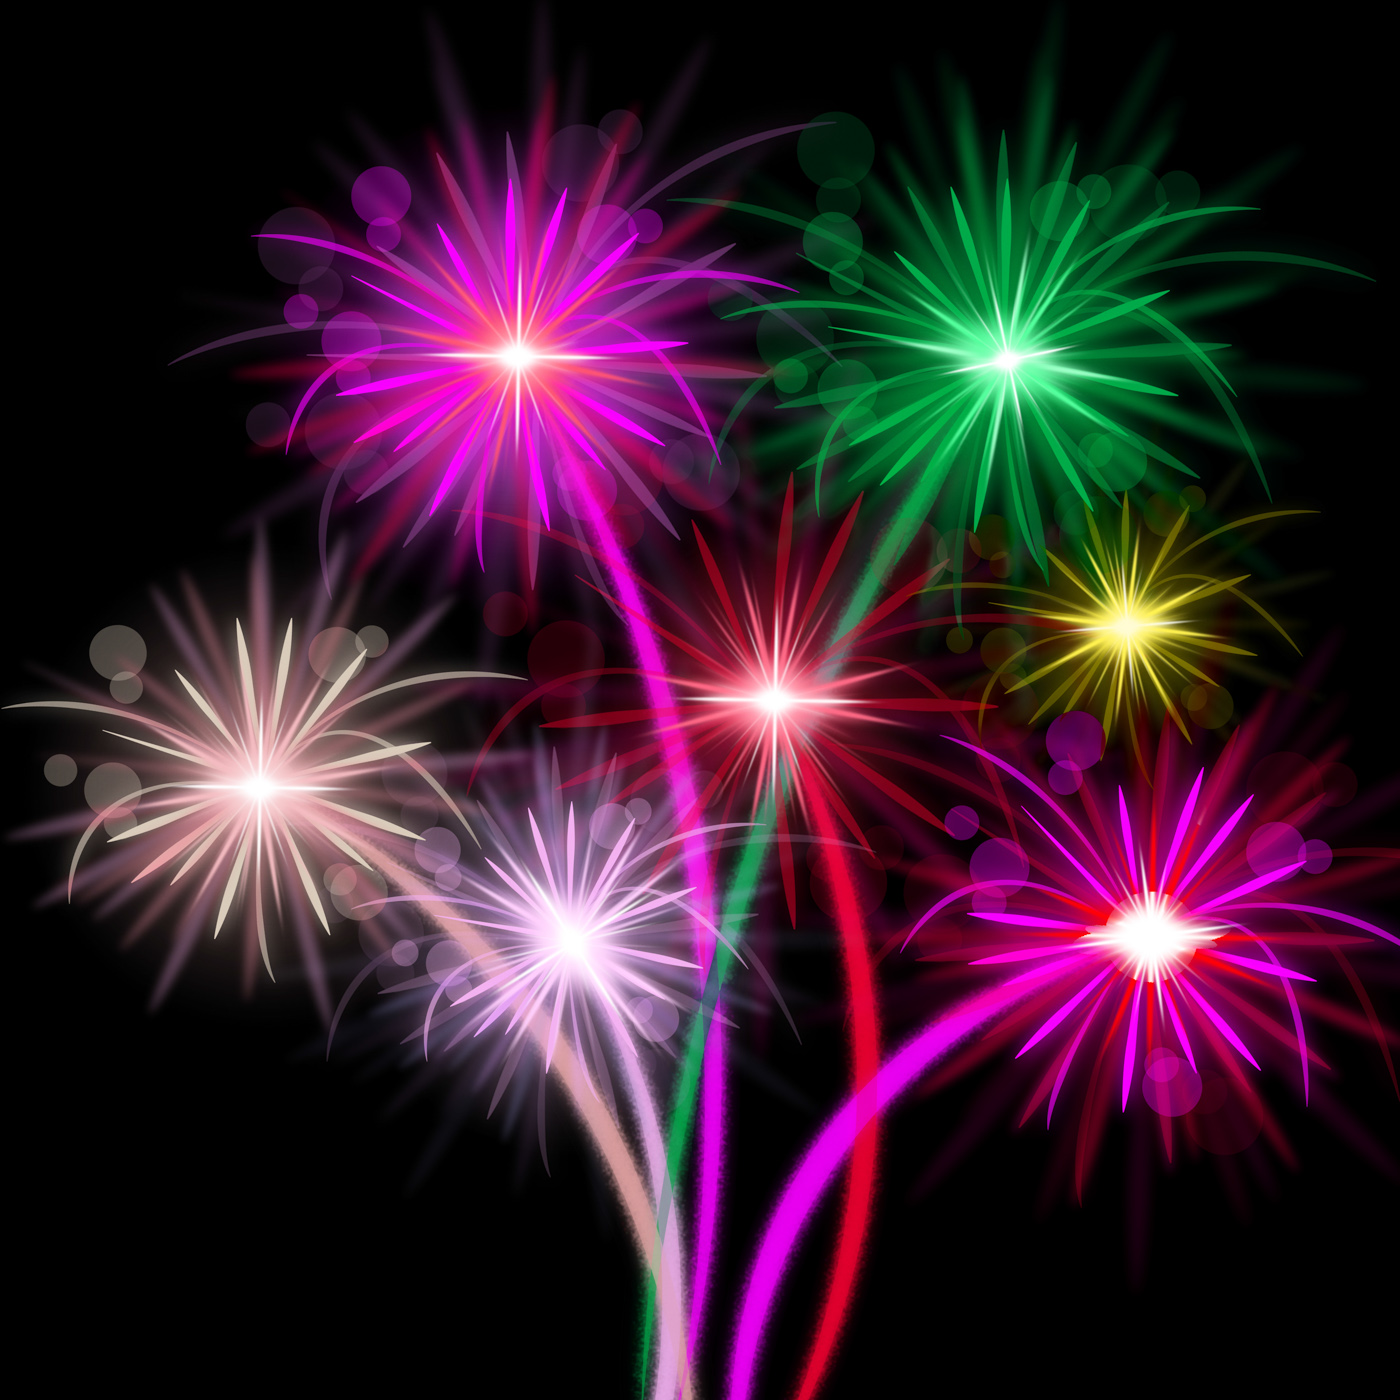 Fireworks color represents explosion background and celebrate photo